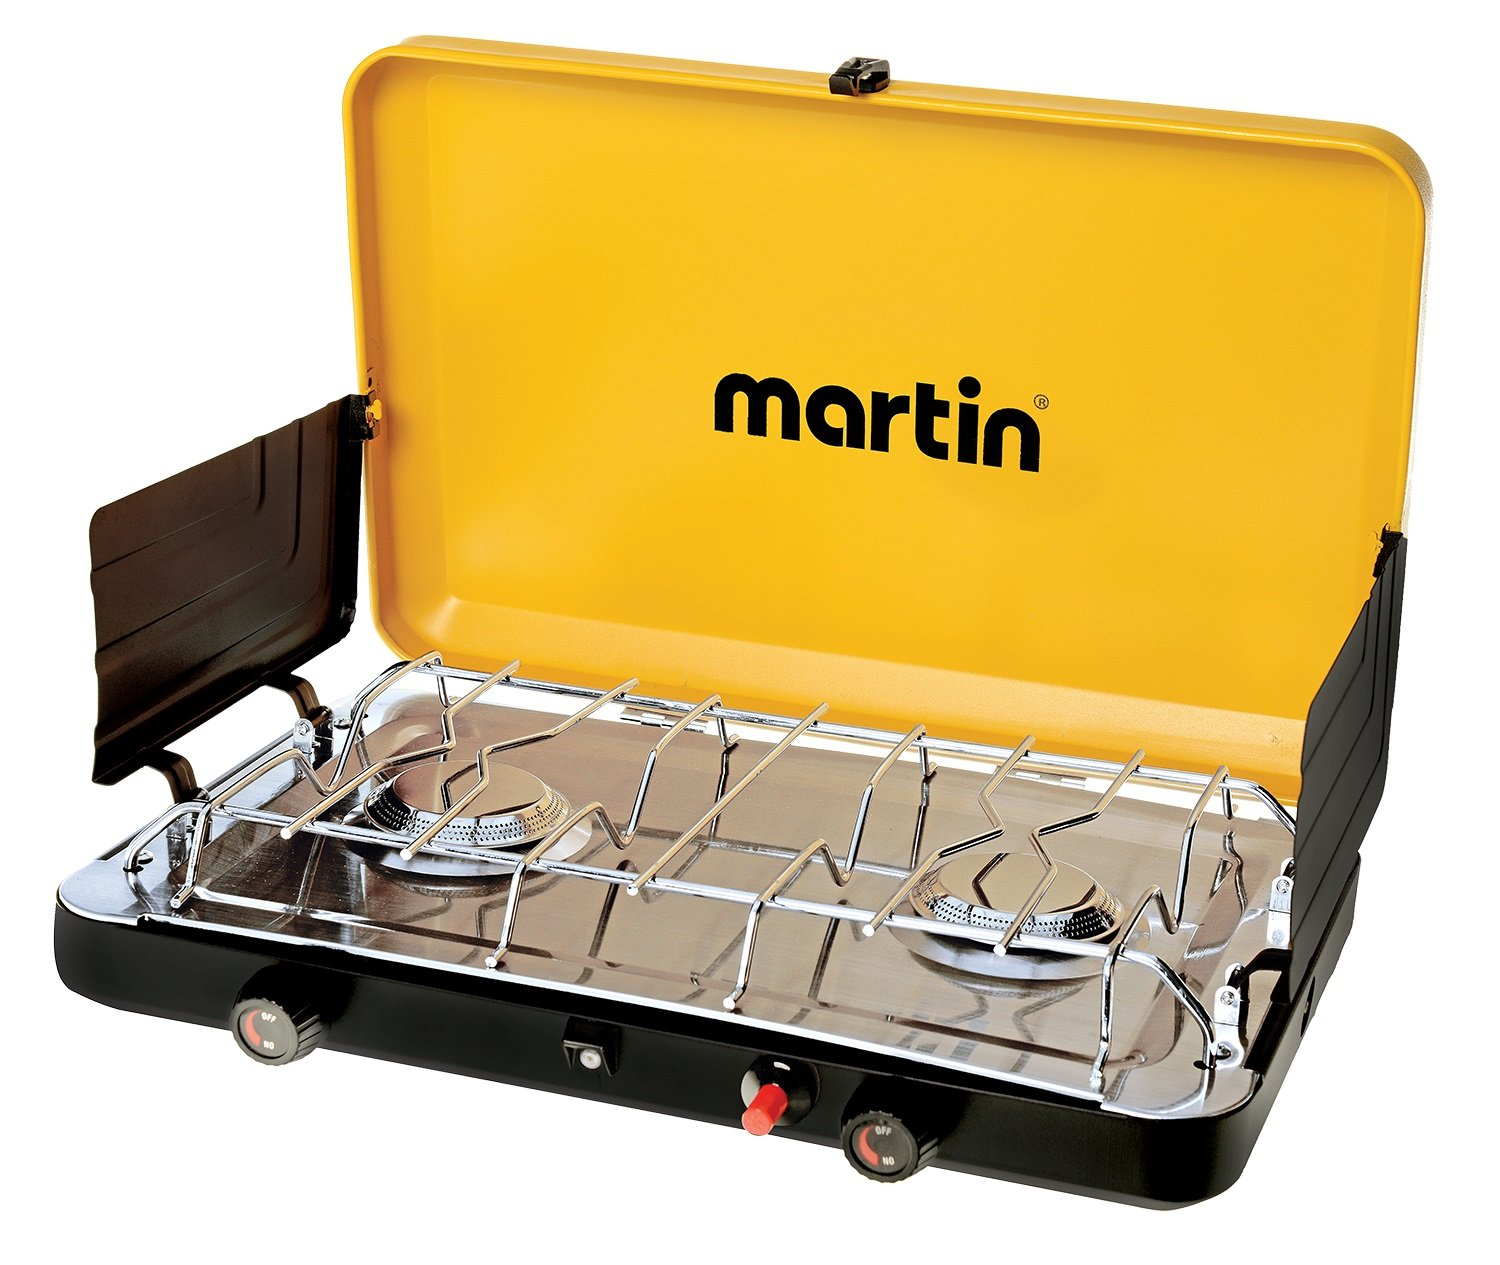 MARTIN 2 Burner Propane Stove Grill Gas 20 000 Btu Outdoor Trip Accessory Portable Advanced Features Propane Burner Csa Certified and Steady Performance by Martin